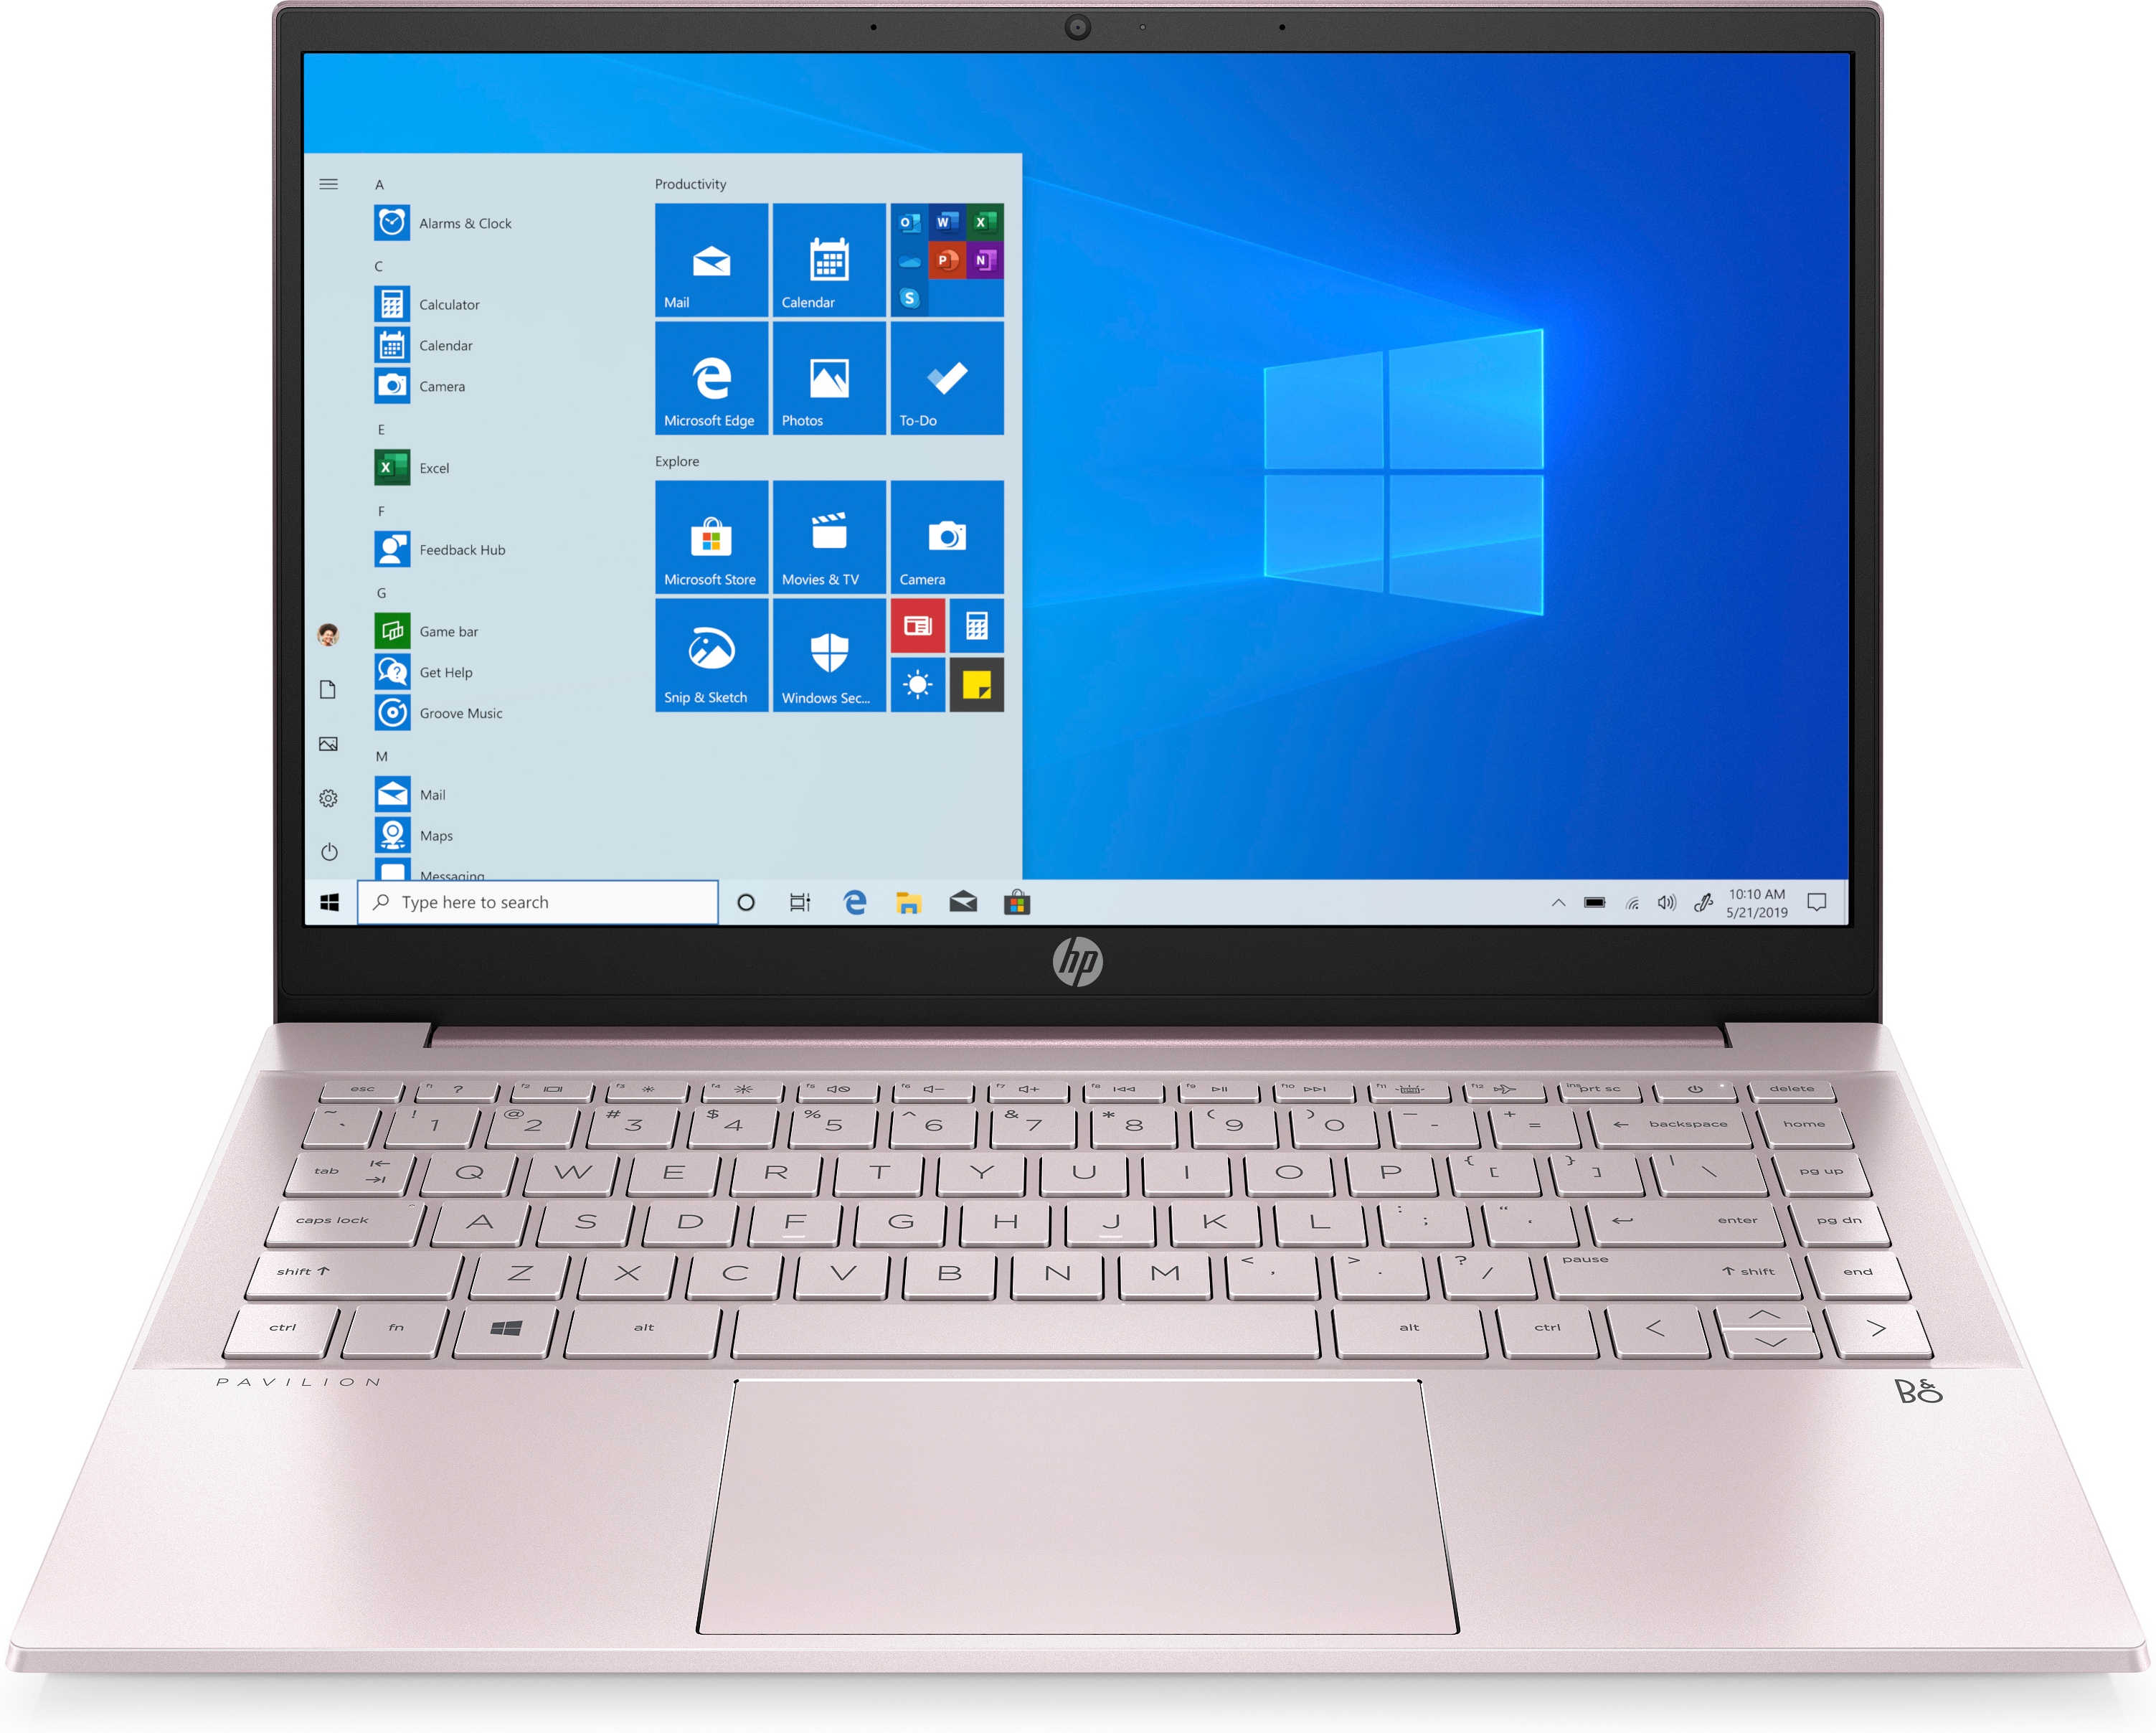 """HP Pavilion 14-dv0249nw i5-1135G7 14""""FHD AG 250nit IPS 8GB_3200MHz SSD512 IrisXe WiFi6 BT5 B&O BLK ALU 43Wh Win10 2Y Natural Silver2"""